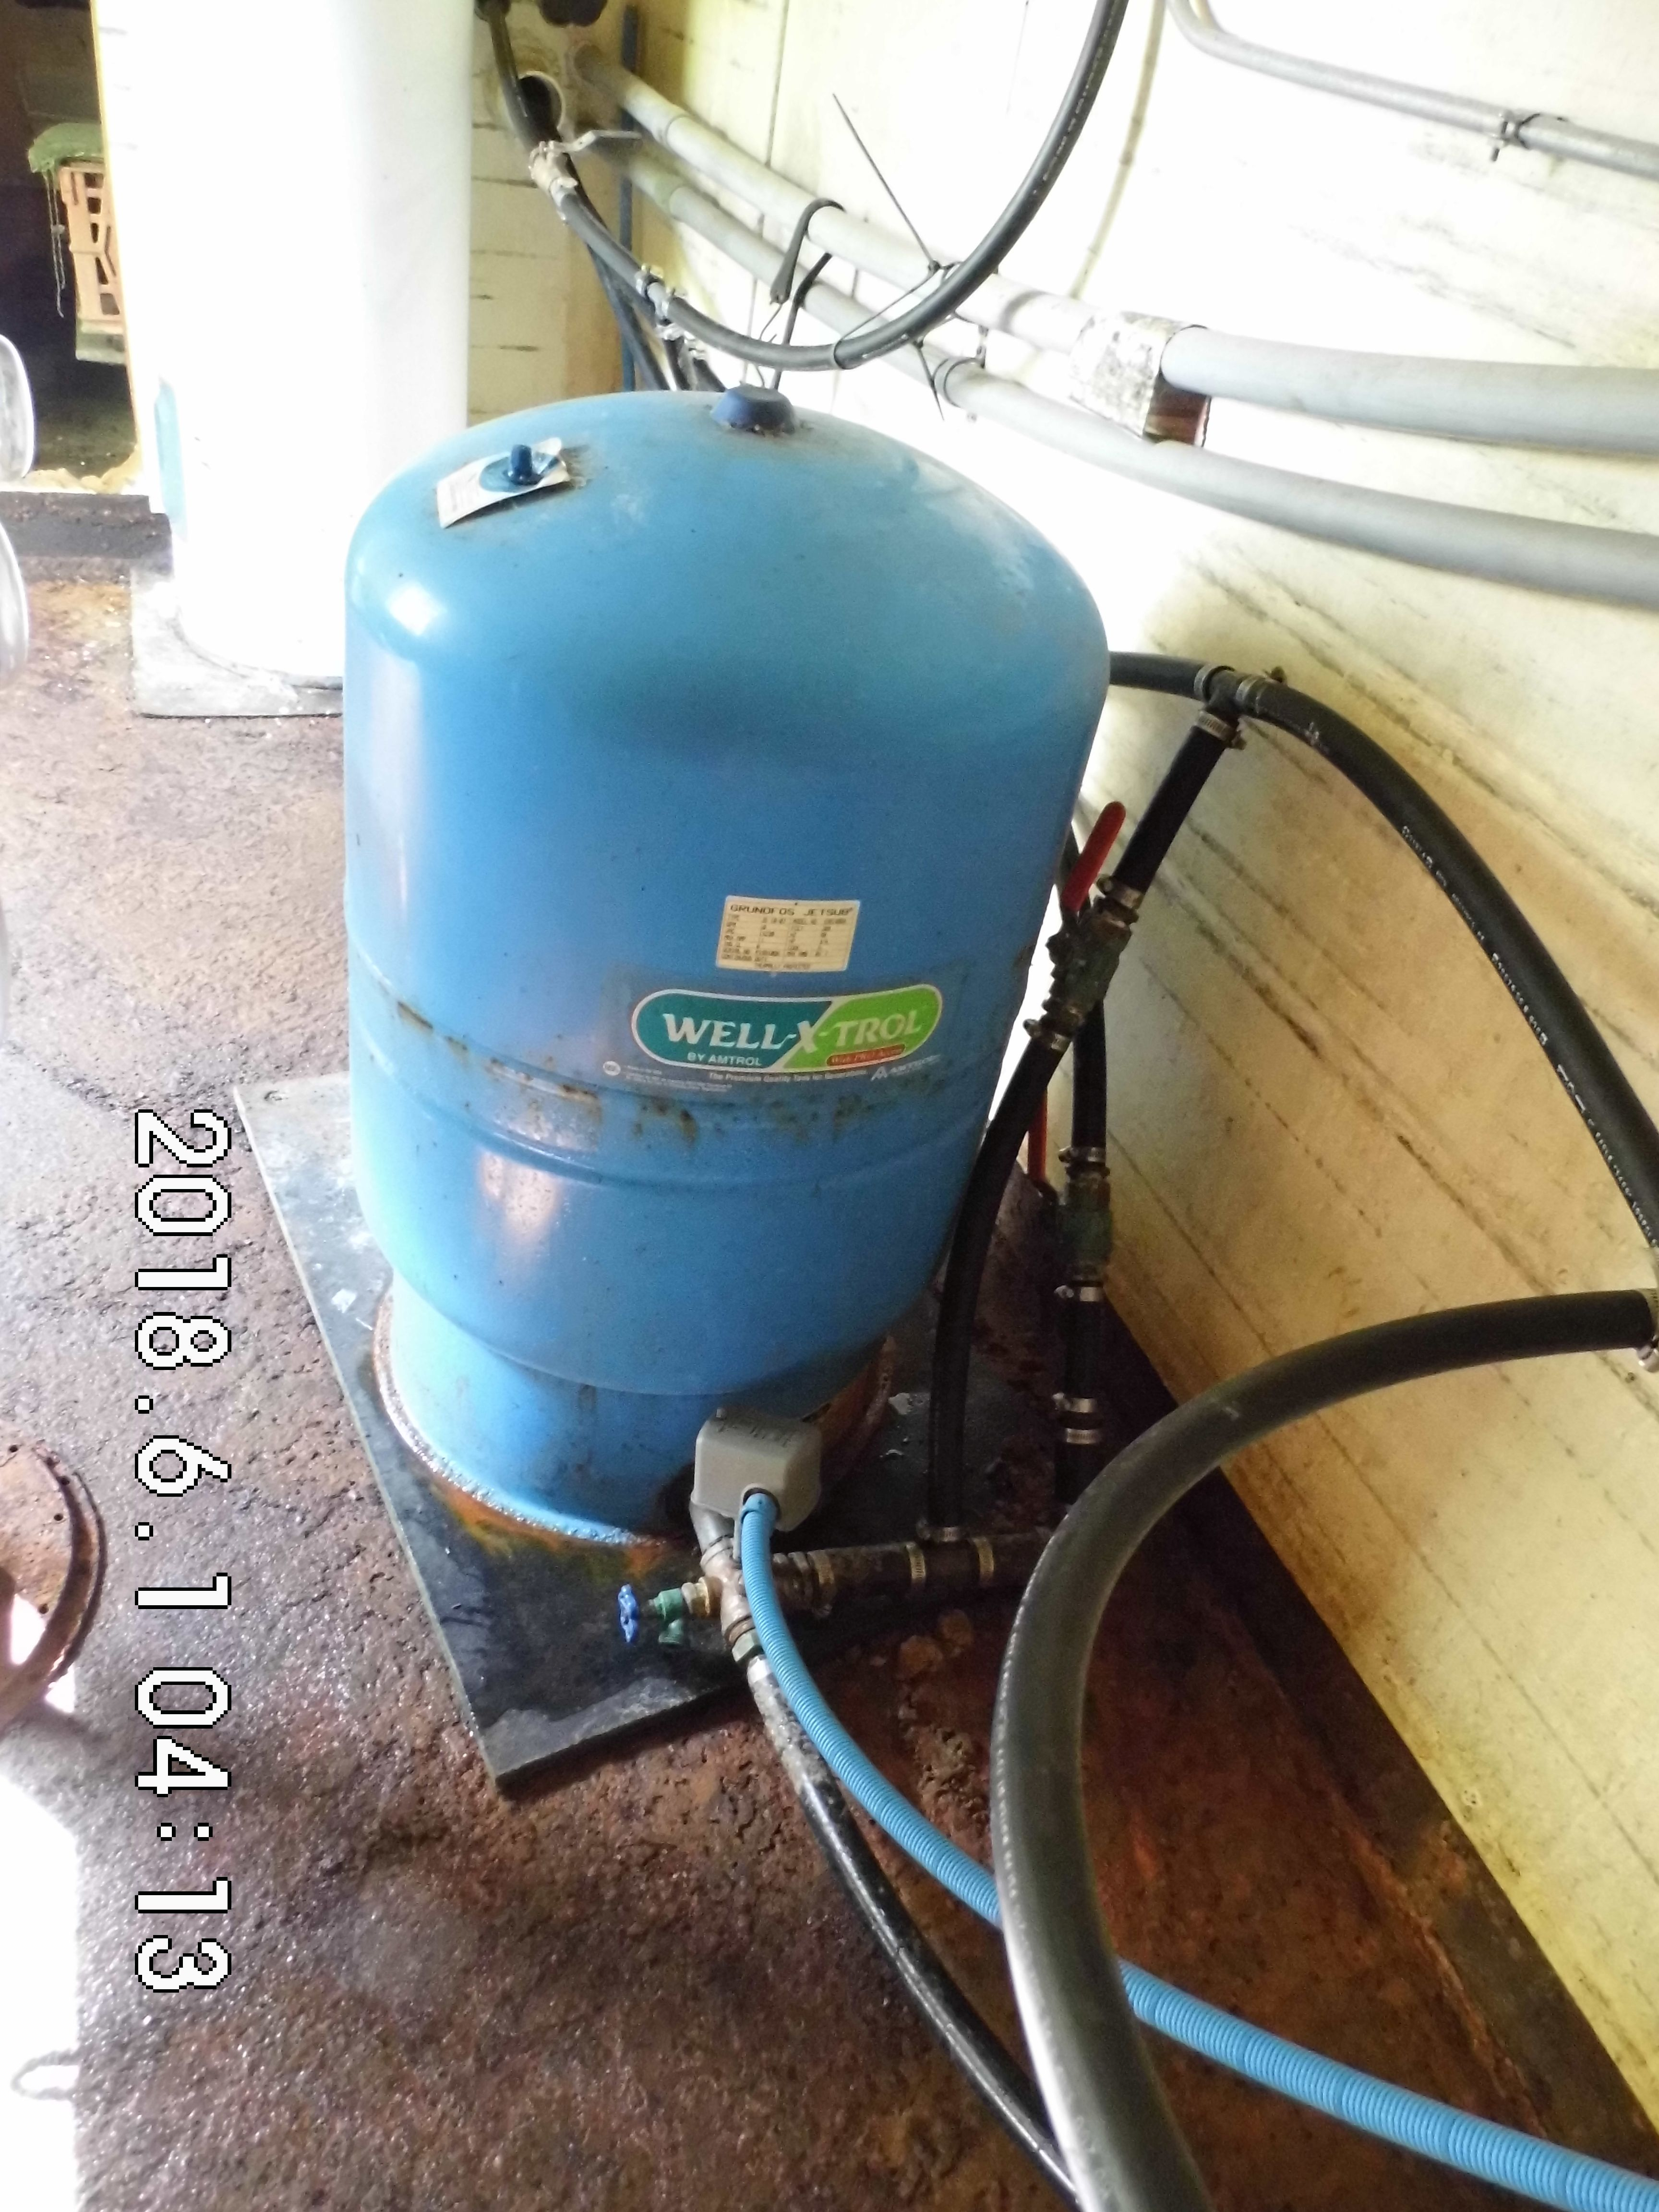 6 Pressure tank and water lines